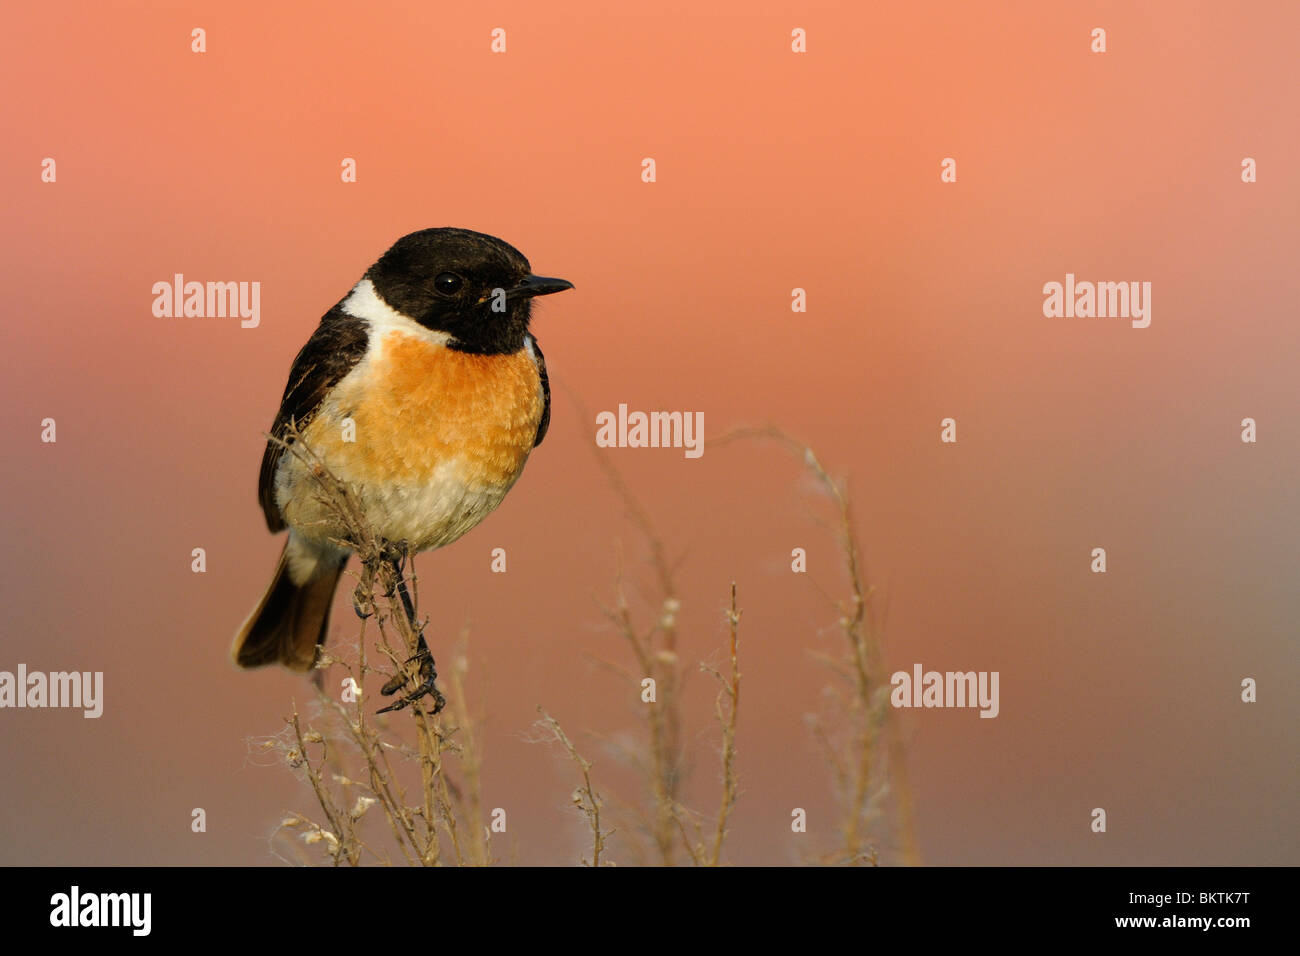 Male Stonechat perched on dried stems with a red background - Stock Image